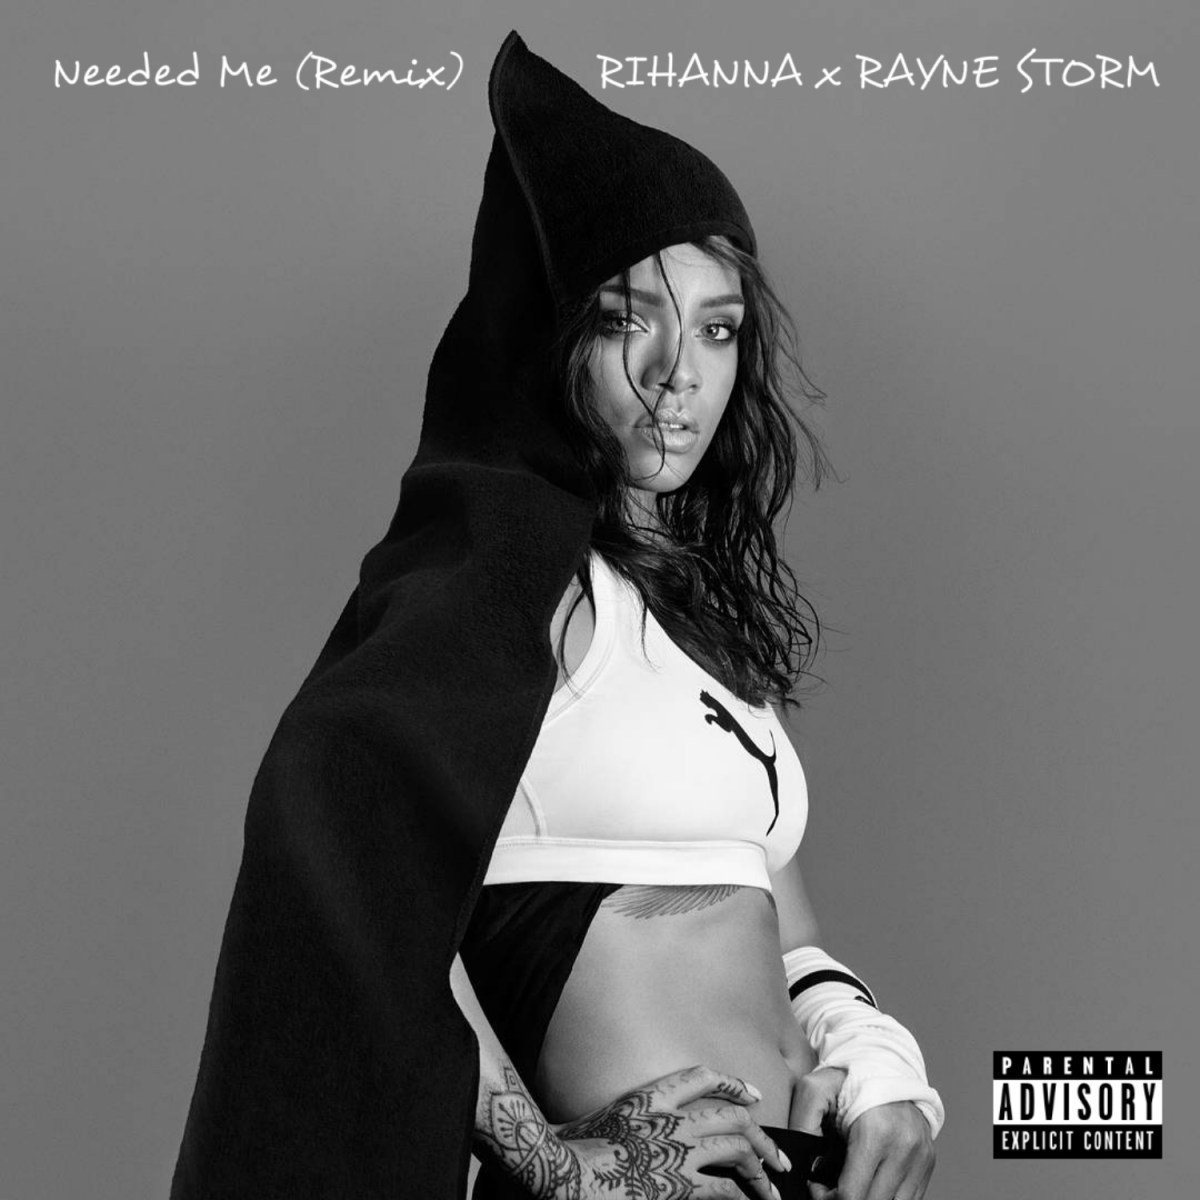 Rihanna - Needed Me (Remix) ft. Rayne Storm